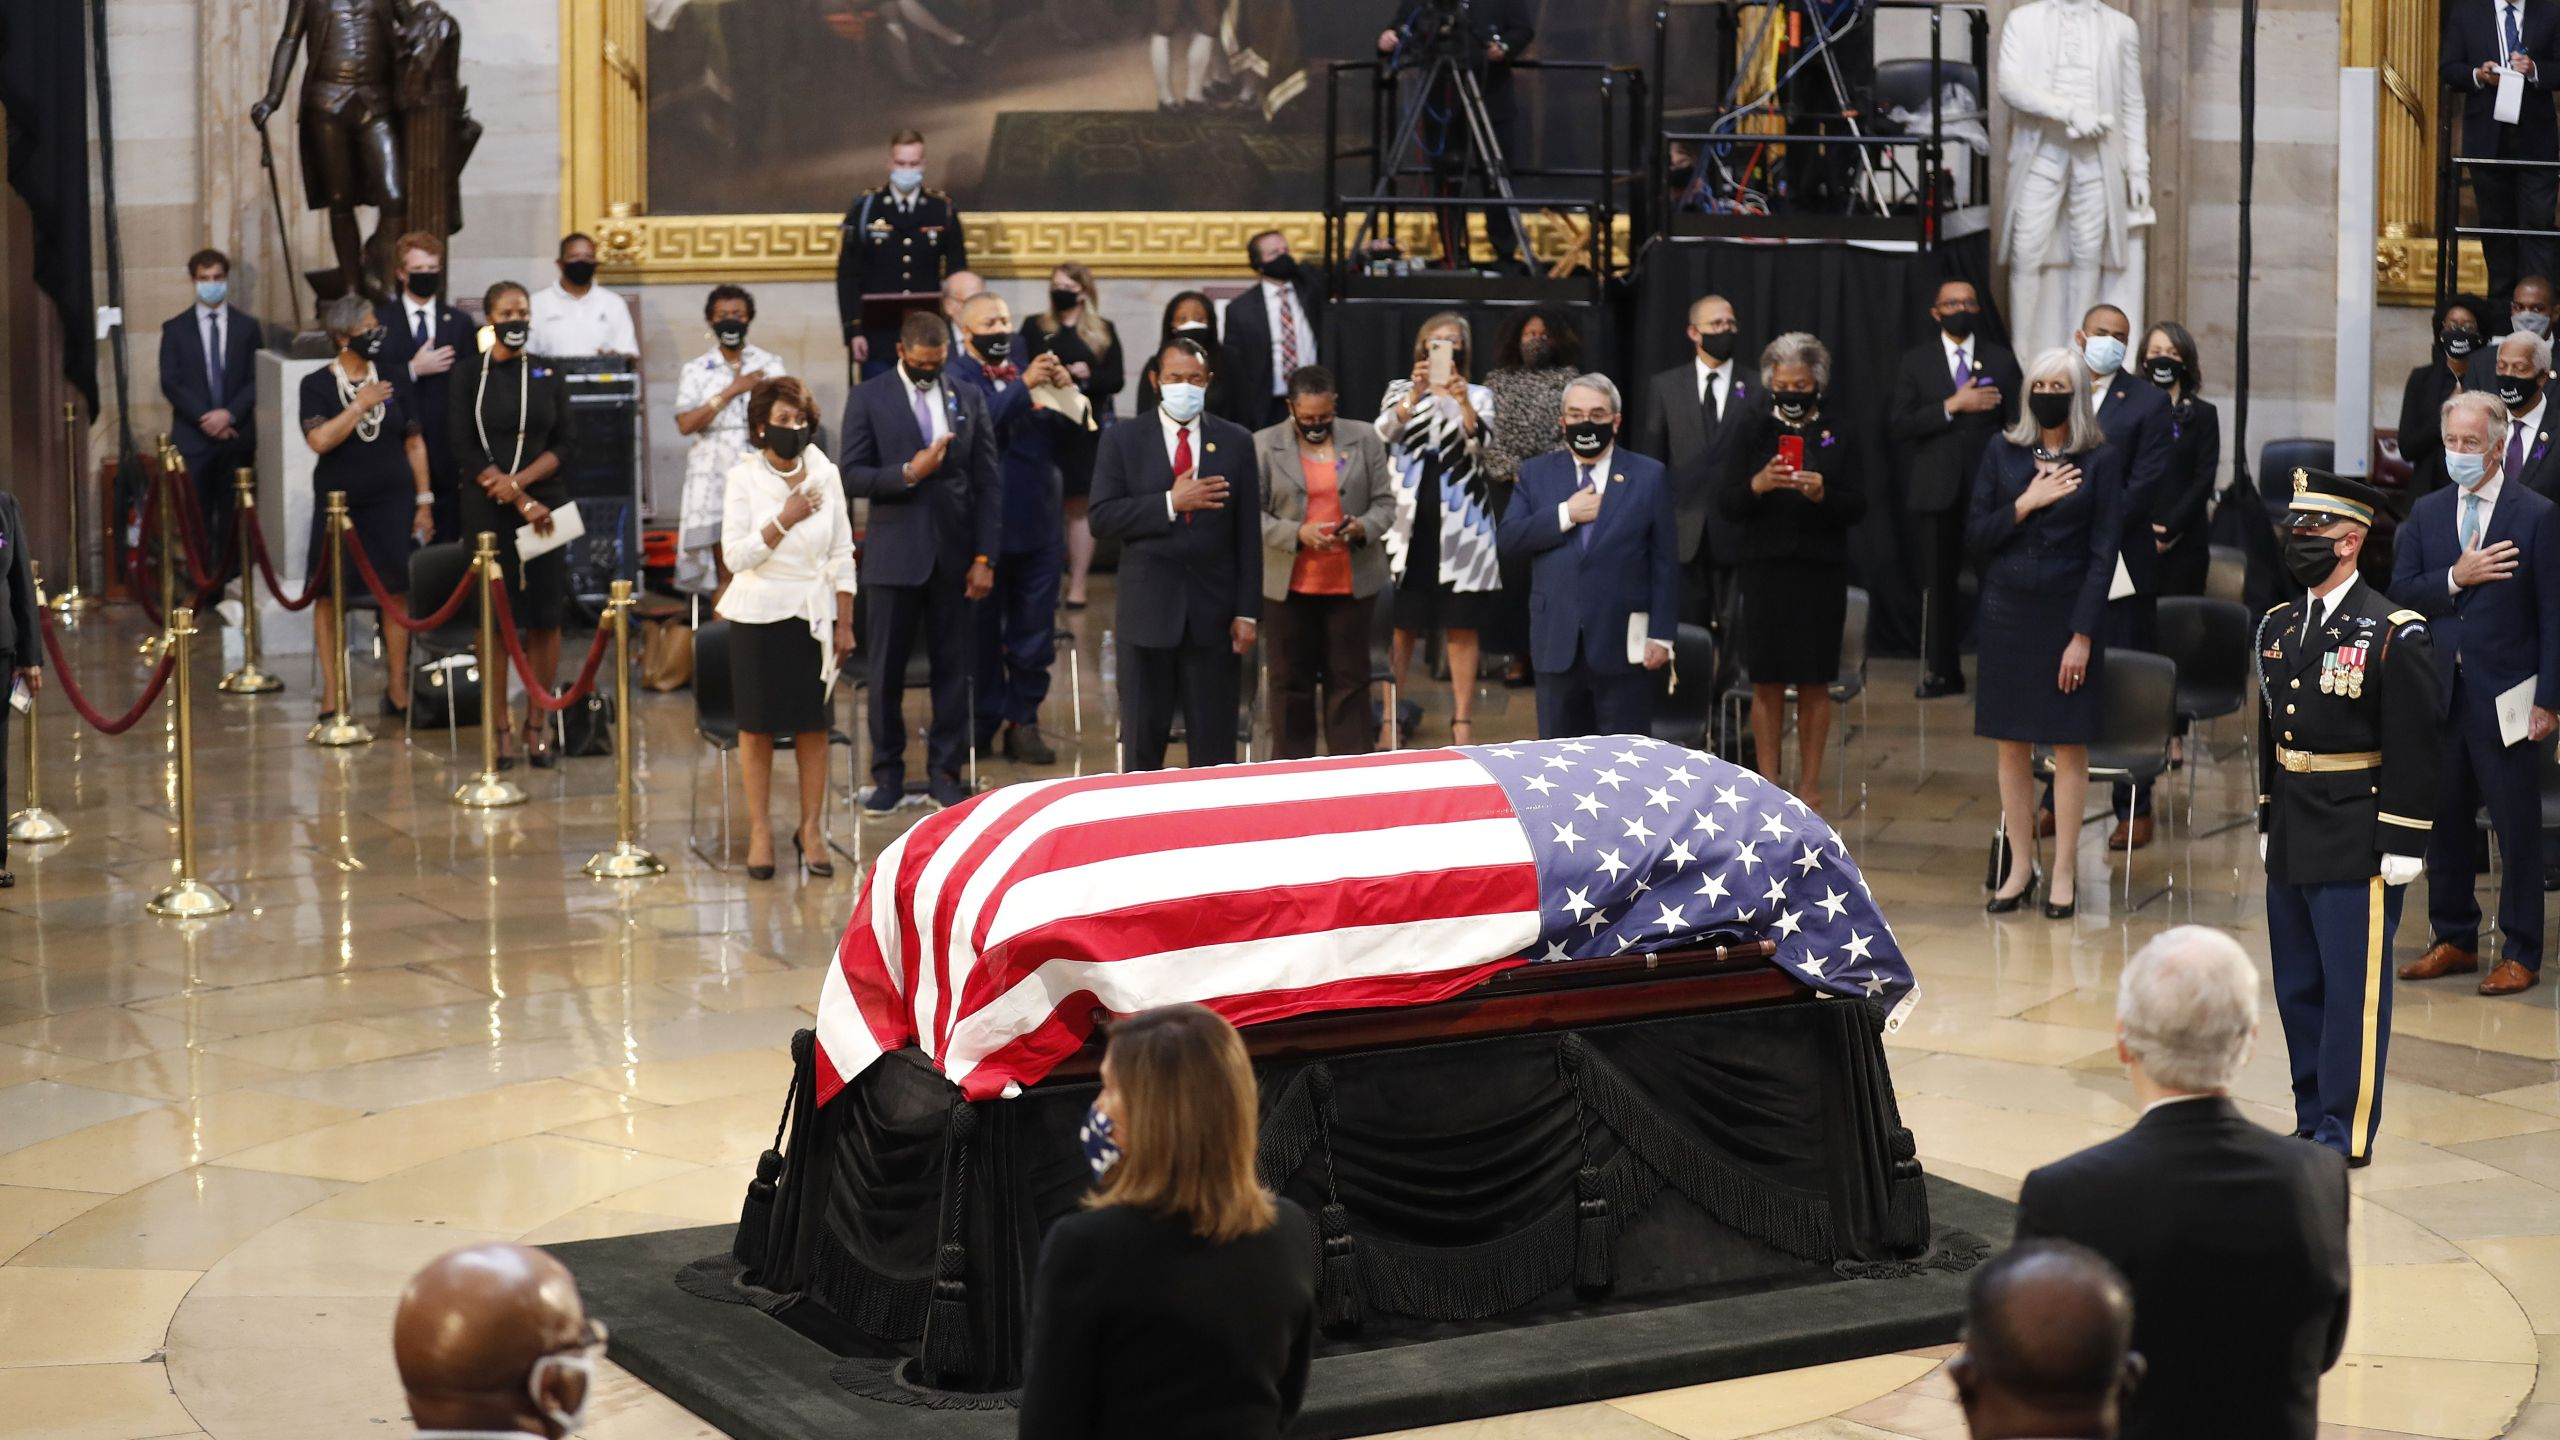 The flag-draped casket of the late Rep. John Lewis, D-GA, is carried by a joint services military honor guard, as he arrives to lie in state in the Rotunda of the US Capitol in Washington, DC, on July 27, 2020. (SHAWN THEW/POOL/AFP via Getty Images)